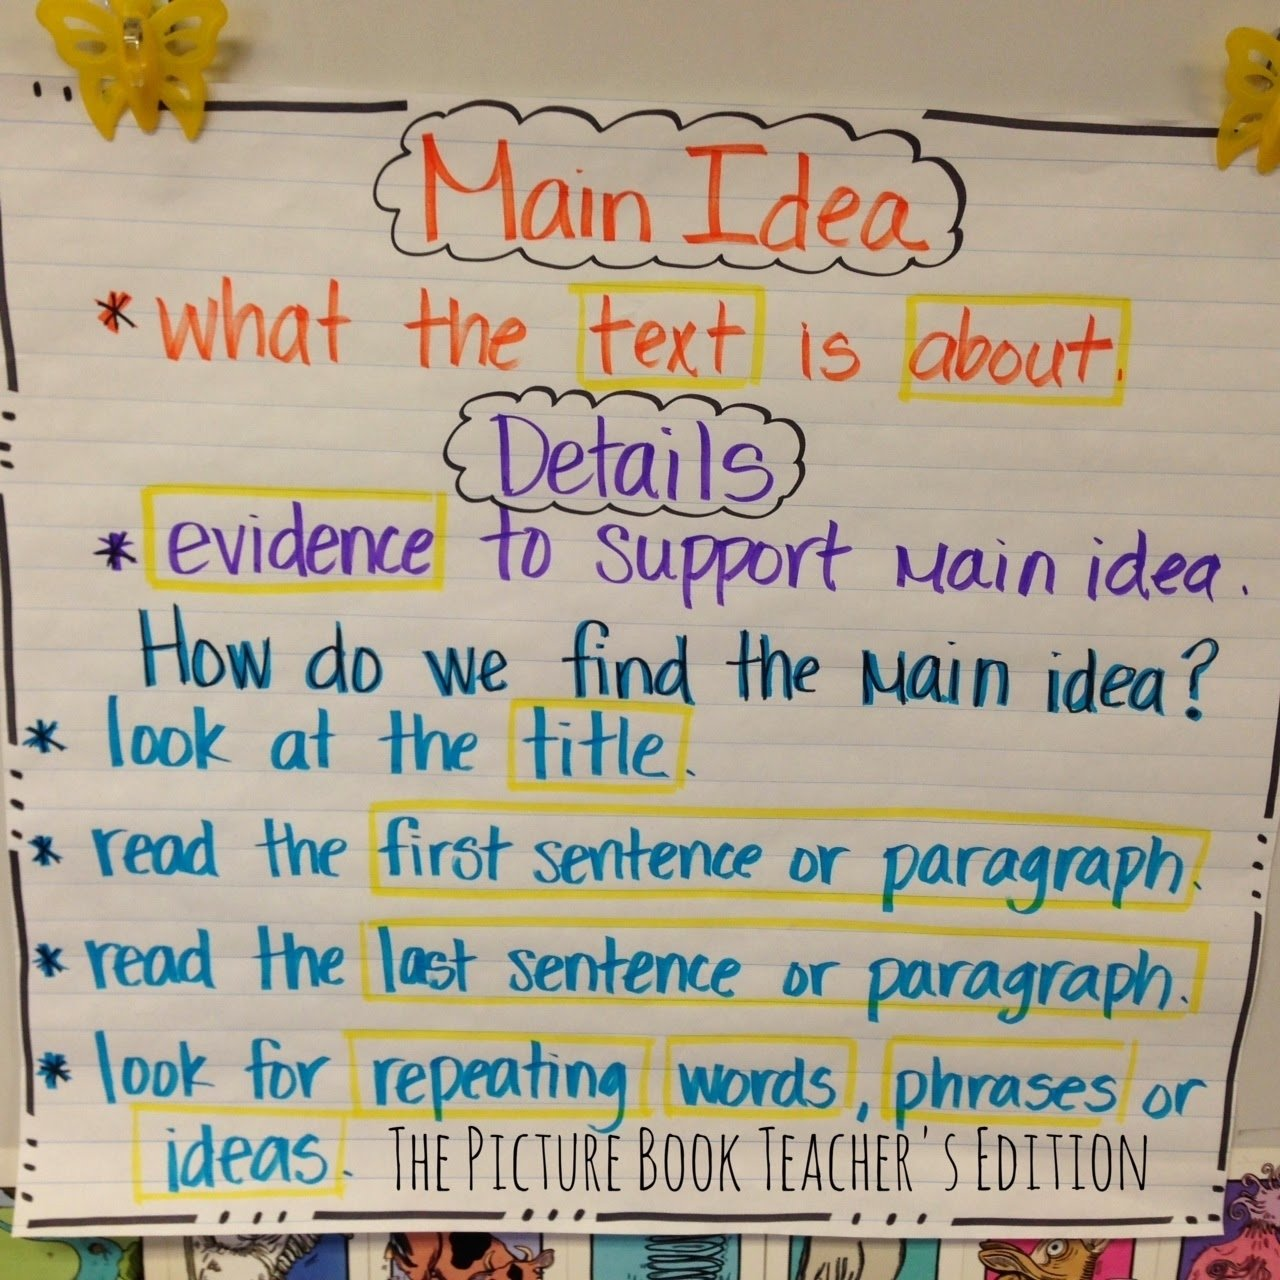 10 Stunning Main Idea Of A Book the picture book teachers edition the importance of main idea 3 2021